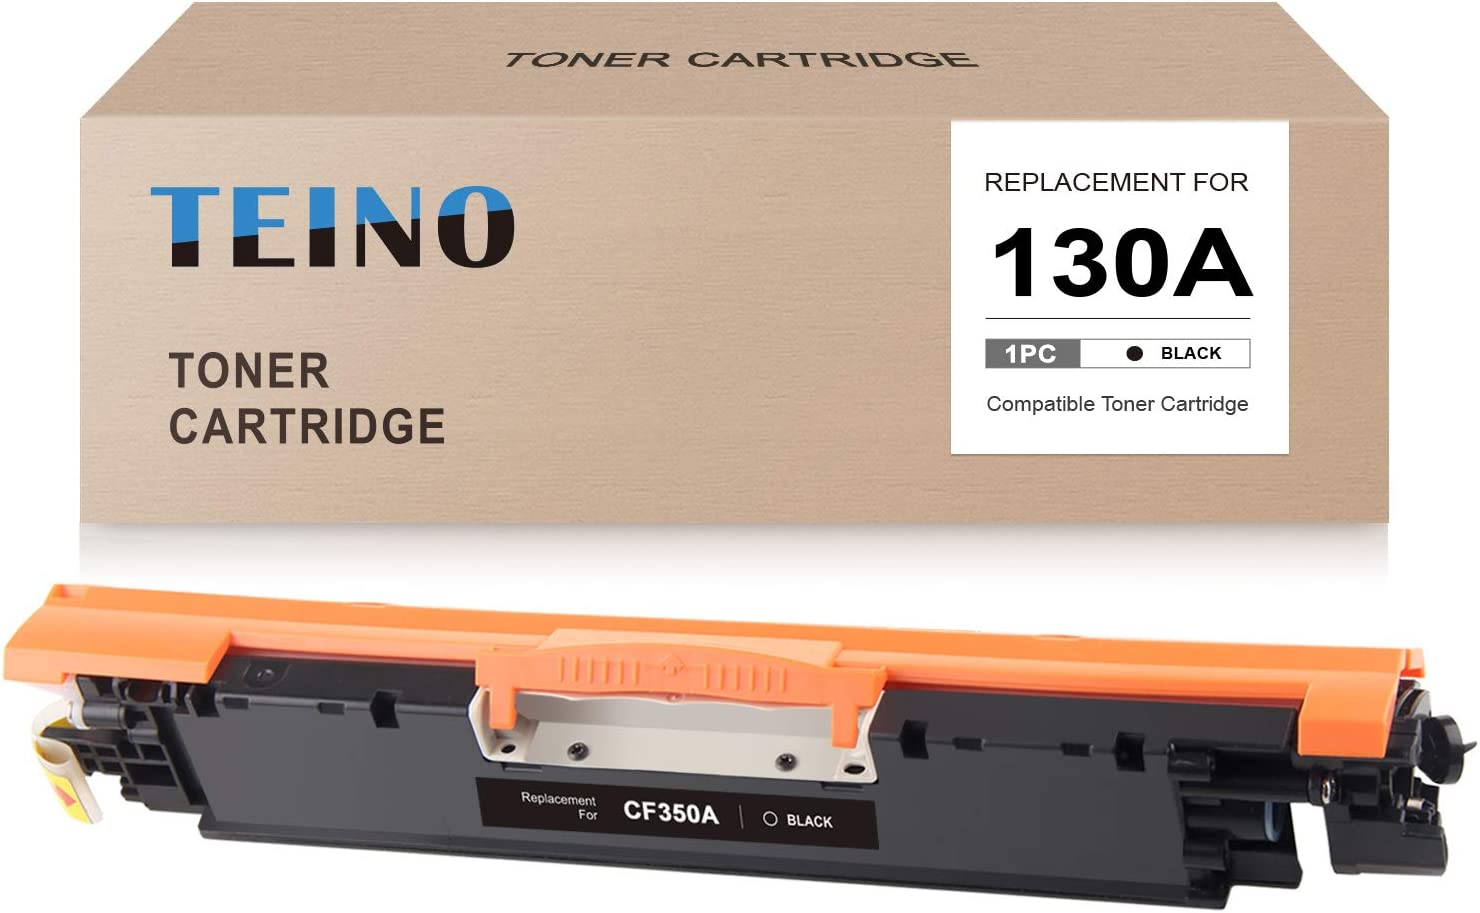 TEINO Compatible Toner Cartridge Replacement for HP 130A CF350A use with HP Color Laserjet Pro MFP M177fw M176 M176fn Color Laserjet Pro M177 (Black, 1-Pack)